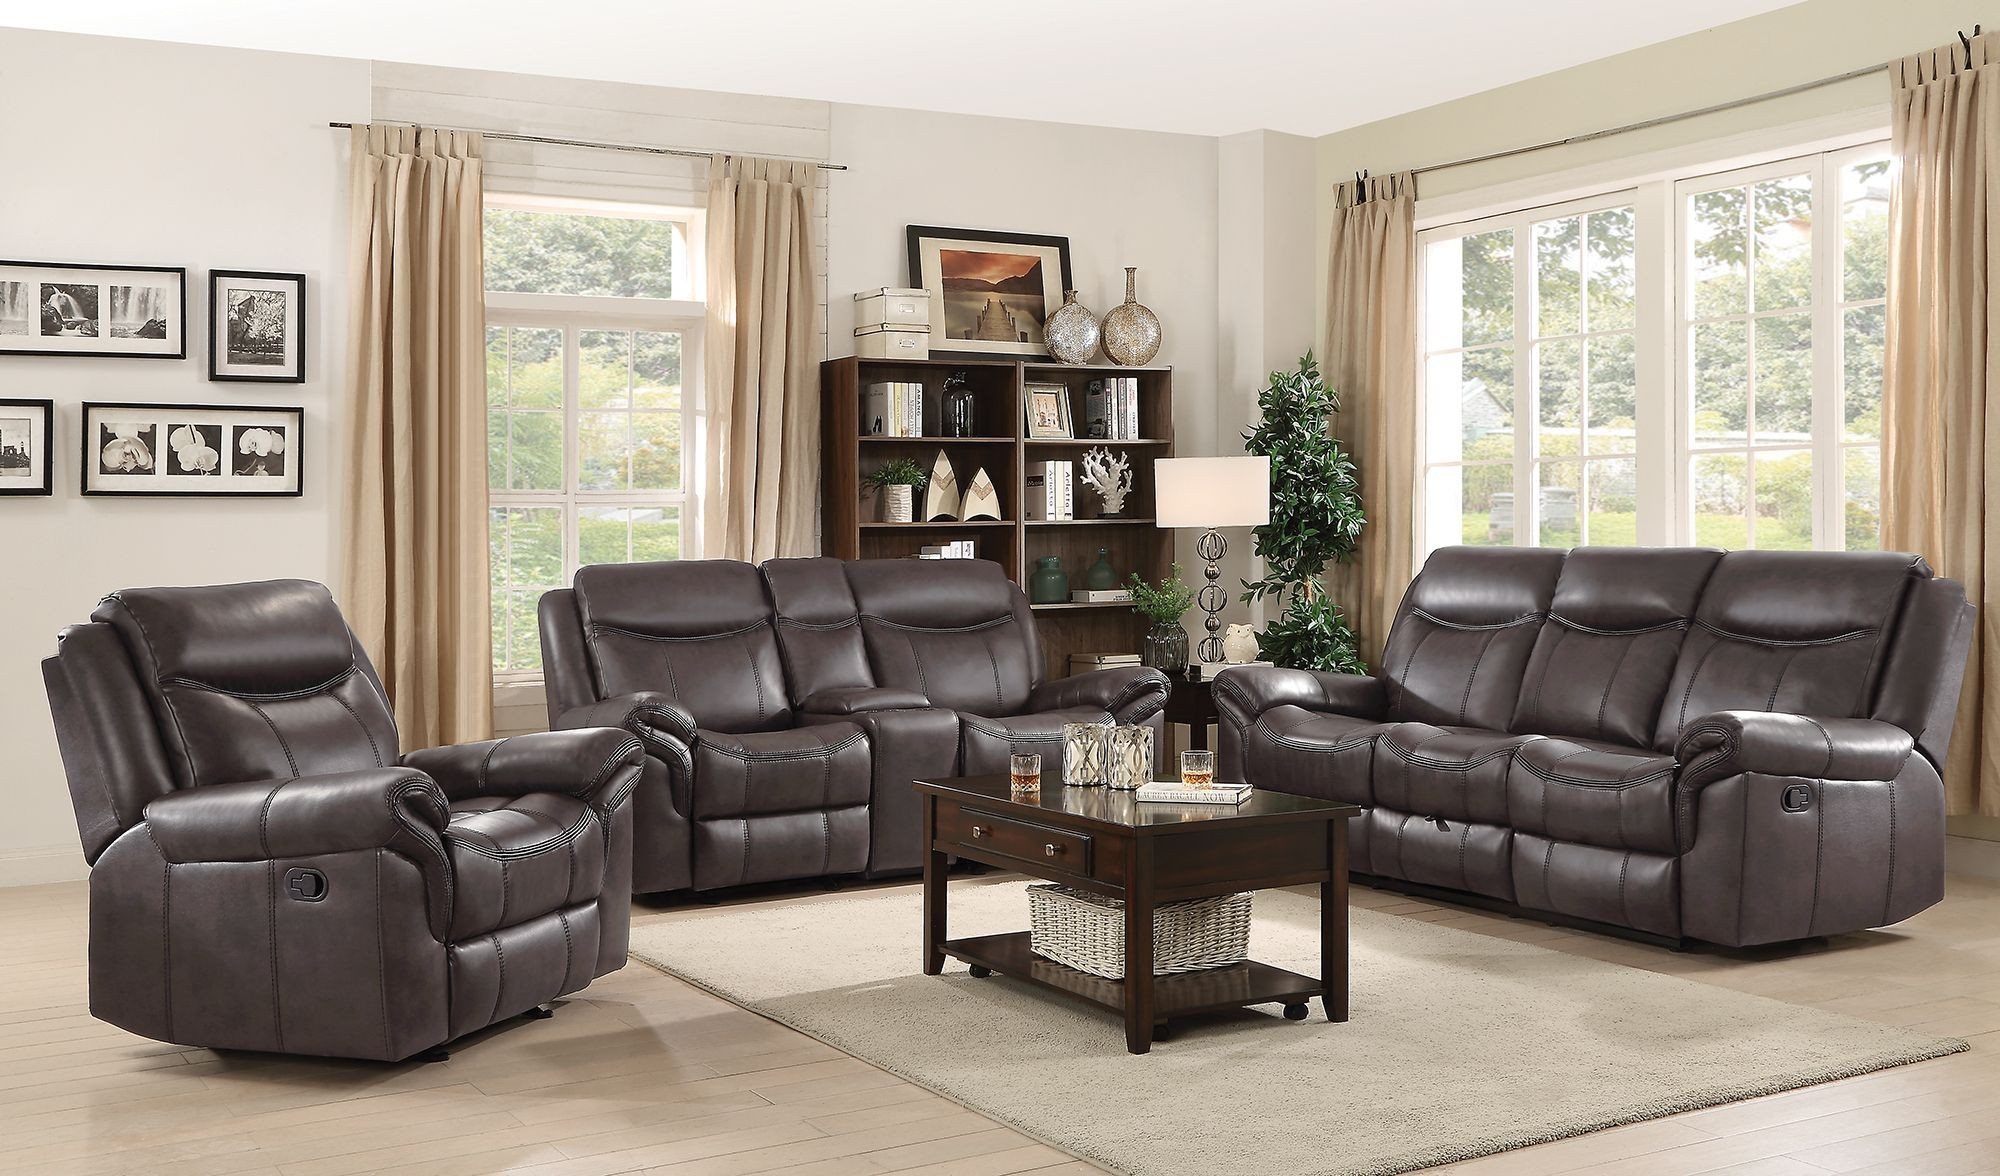 sawyer brown motion living room set from coaster coleman furniture